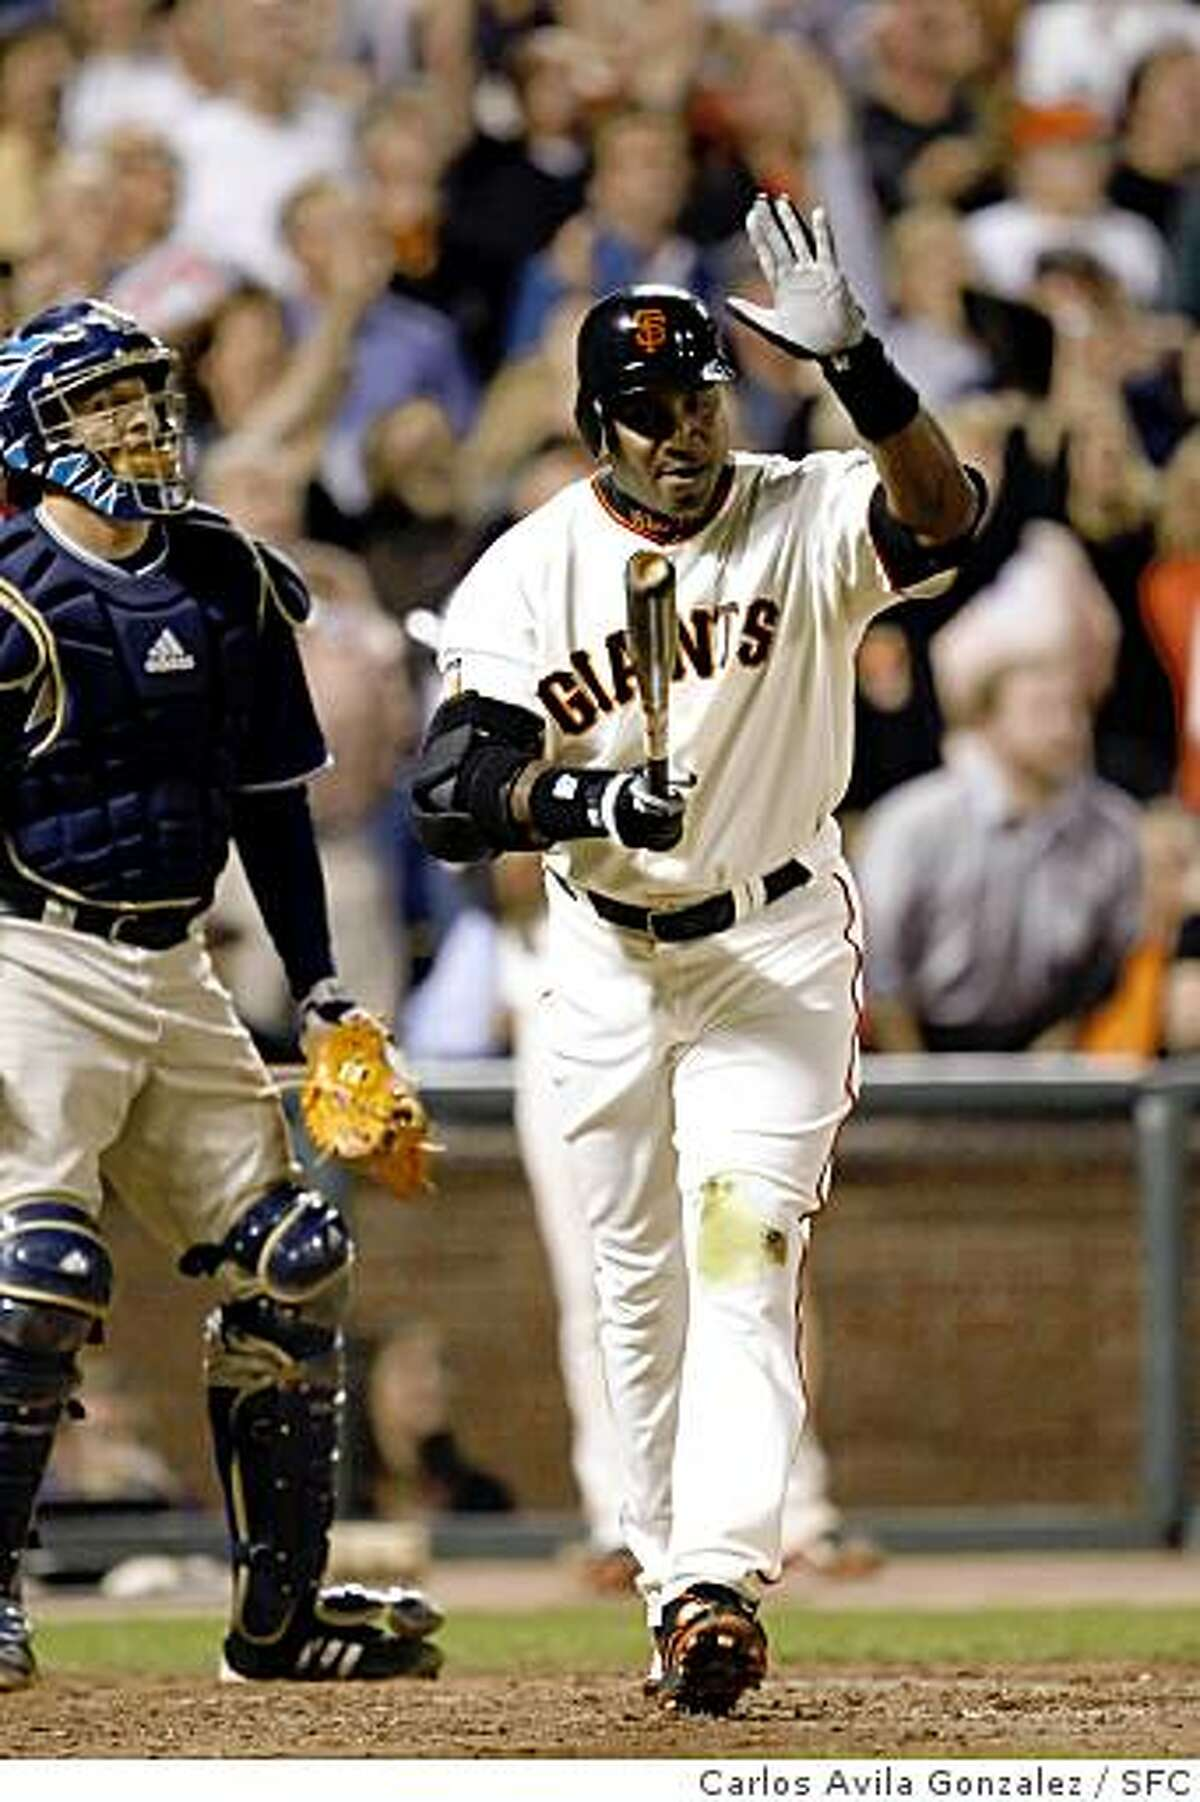 GIANTS27_0021_CAG.JPG Barry Bonds slaps his bat after popping out deep to center field in his last at-bat as a San Francisco Giant. Barry Bonds bids farewell to the fans at AT&T Park. The San Francisco Giants played the San Diego Padres at AT&T Park in San Francisco, Ca., on Wednesday, September 26, 2007. This game marks the end of Barry Bonds's career as a Giant in front of the home crowd, as he has been informed that he will not return to the team by the team's management.